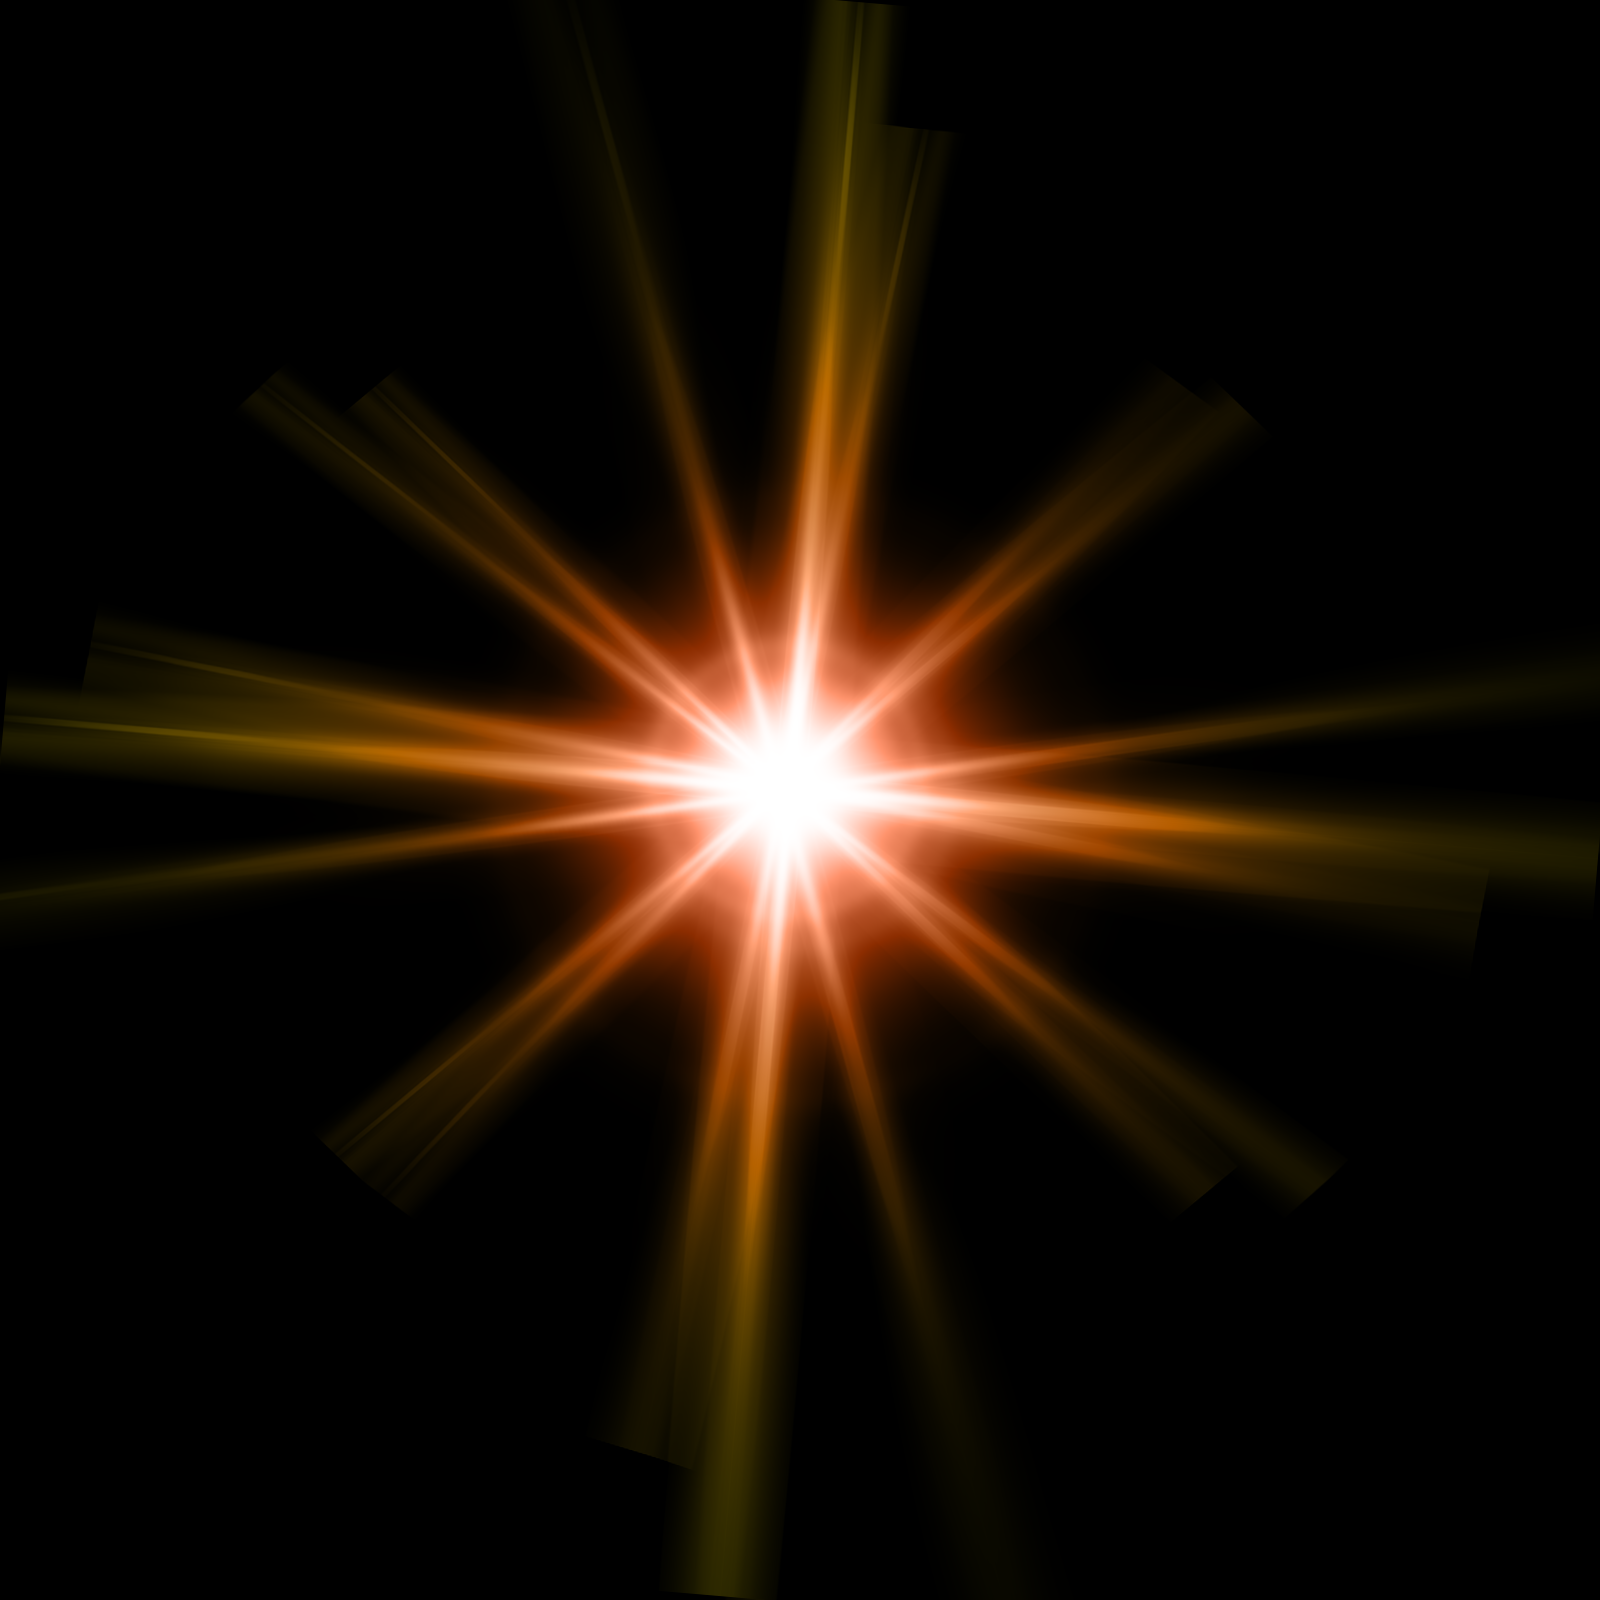 Creating Realistic Starburst Effects in Photoshop.